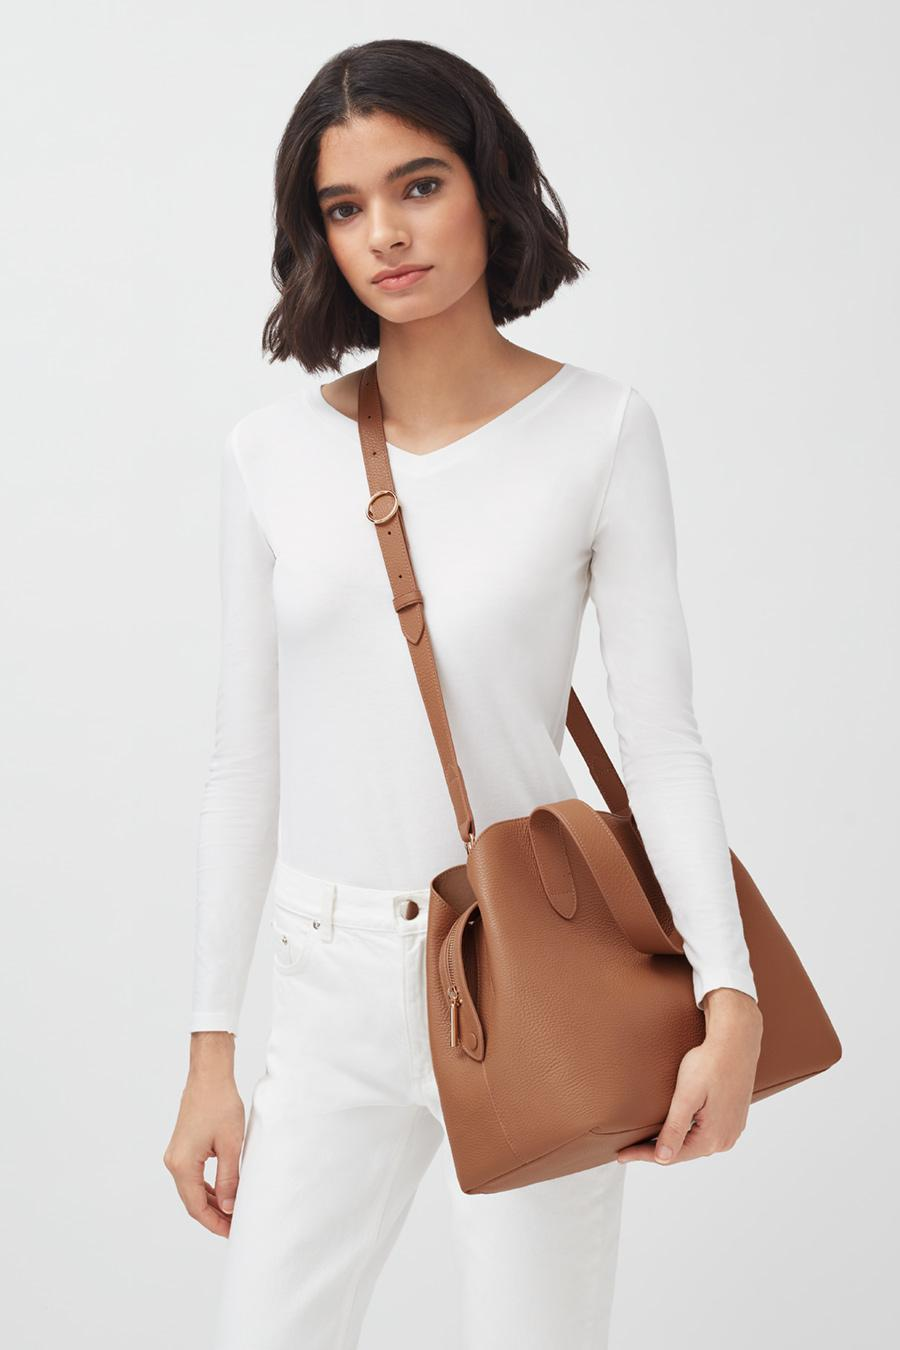 Women's Zippered Satchel Bag in Caramel | Pebbled Leather by Cuyana 5